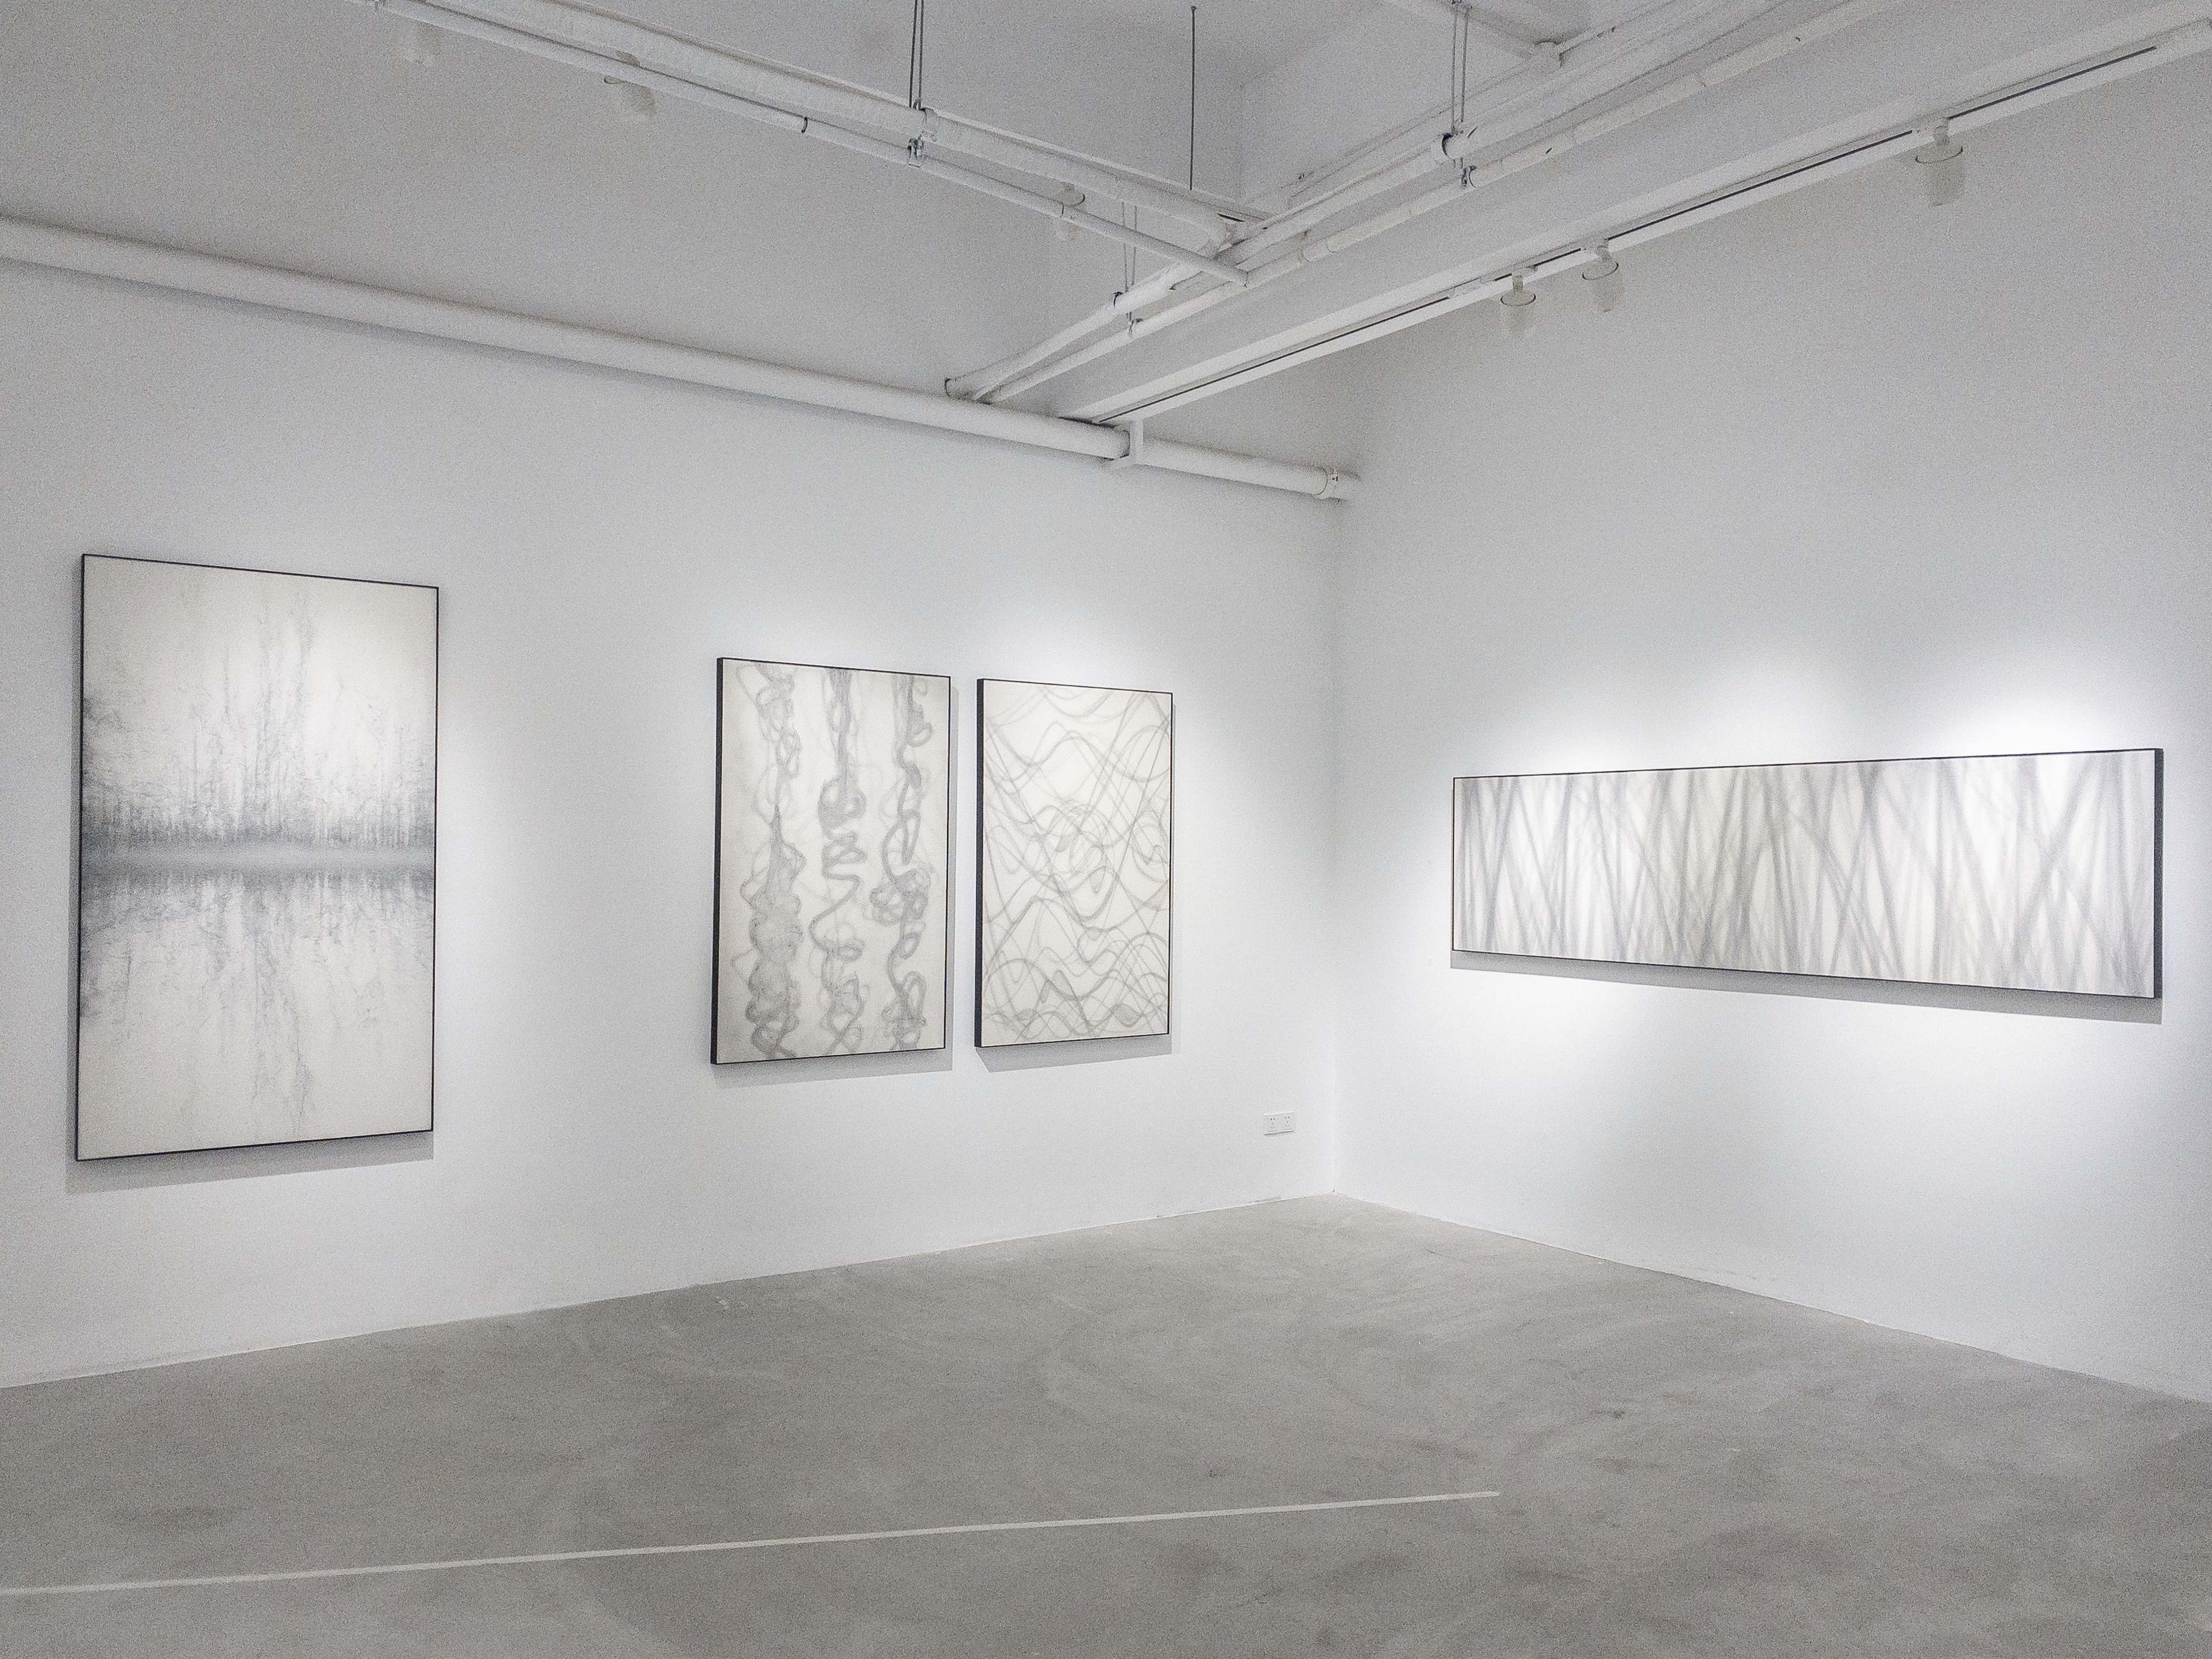 Installation view of Unveiled Bright